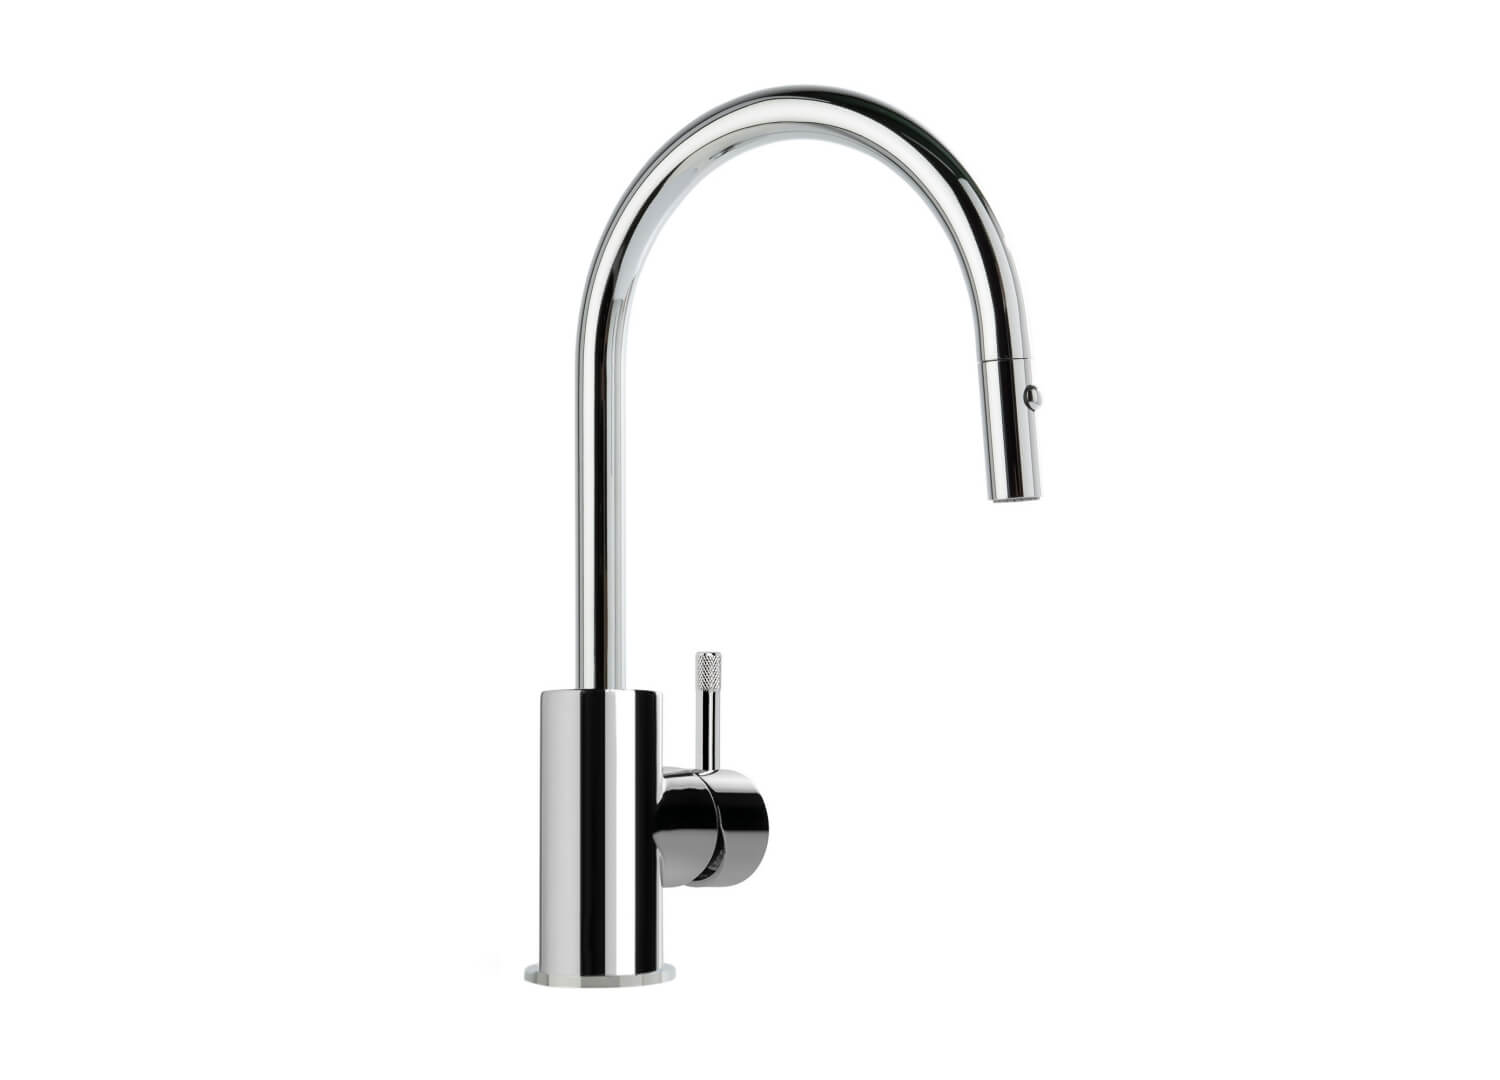 est living design directory brodware yokato kitchen mixer 1